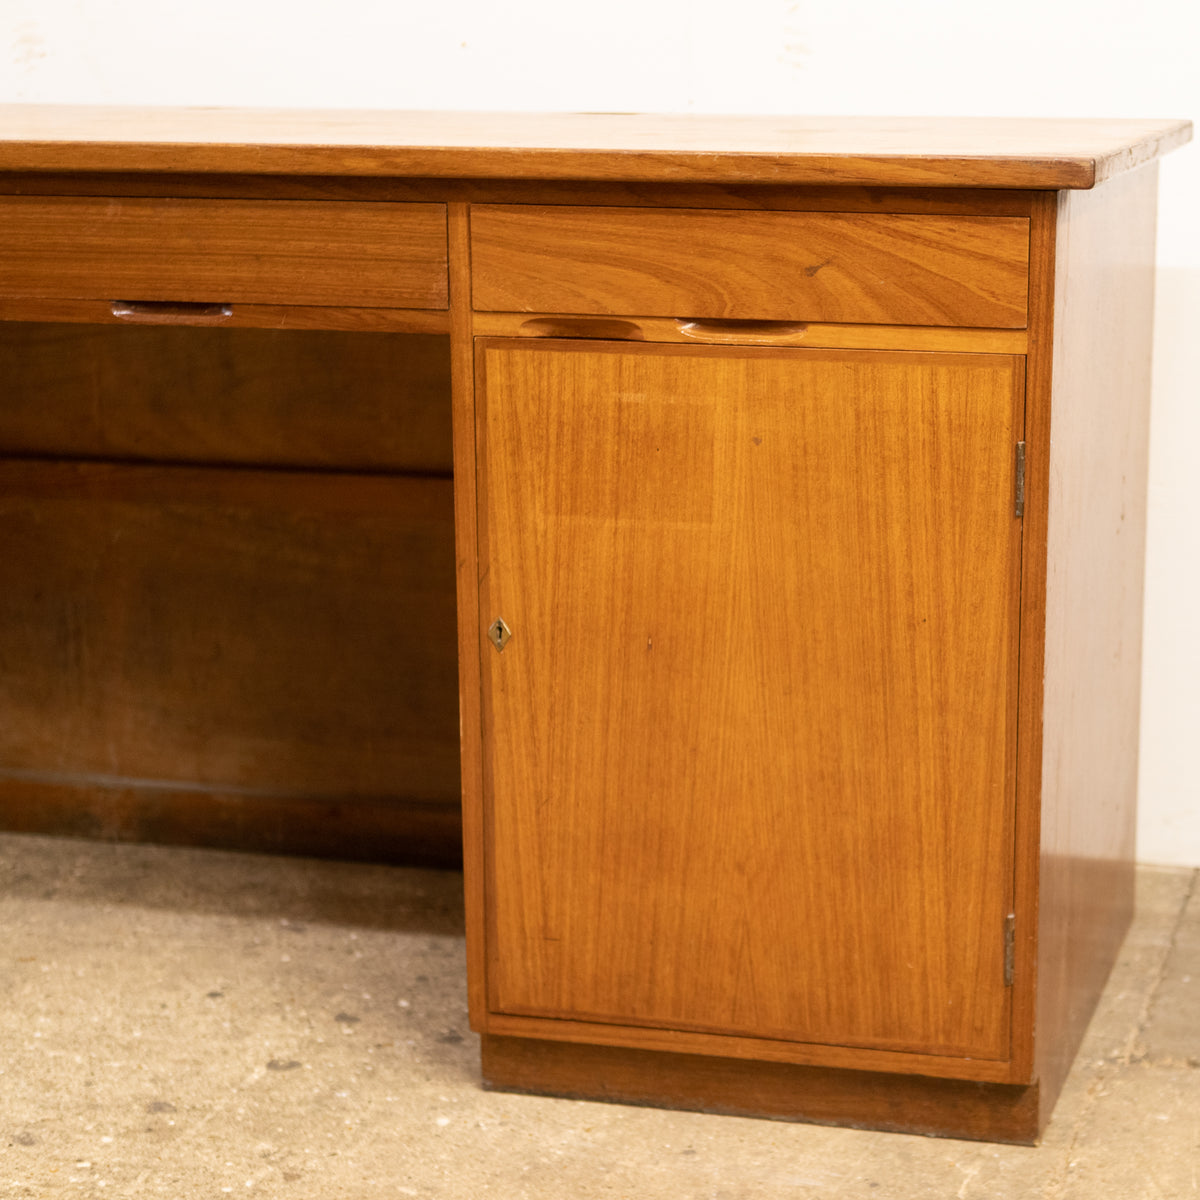 Reclaimed Mid-Century Solid Teak Sideboard Desk Unit With Cupboards & Drawers | The Architectural Forum